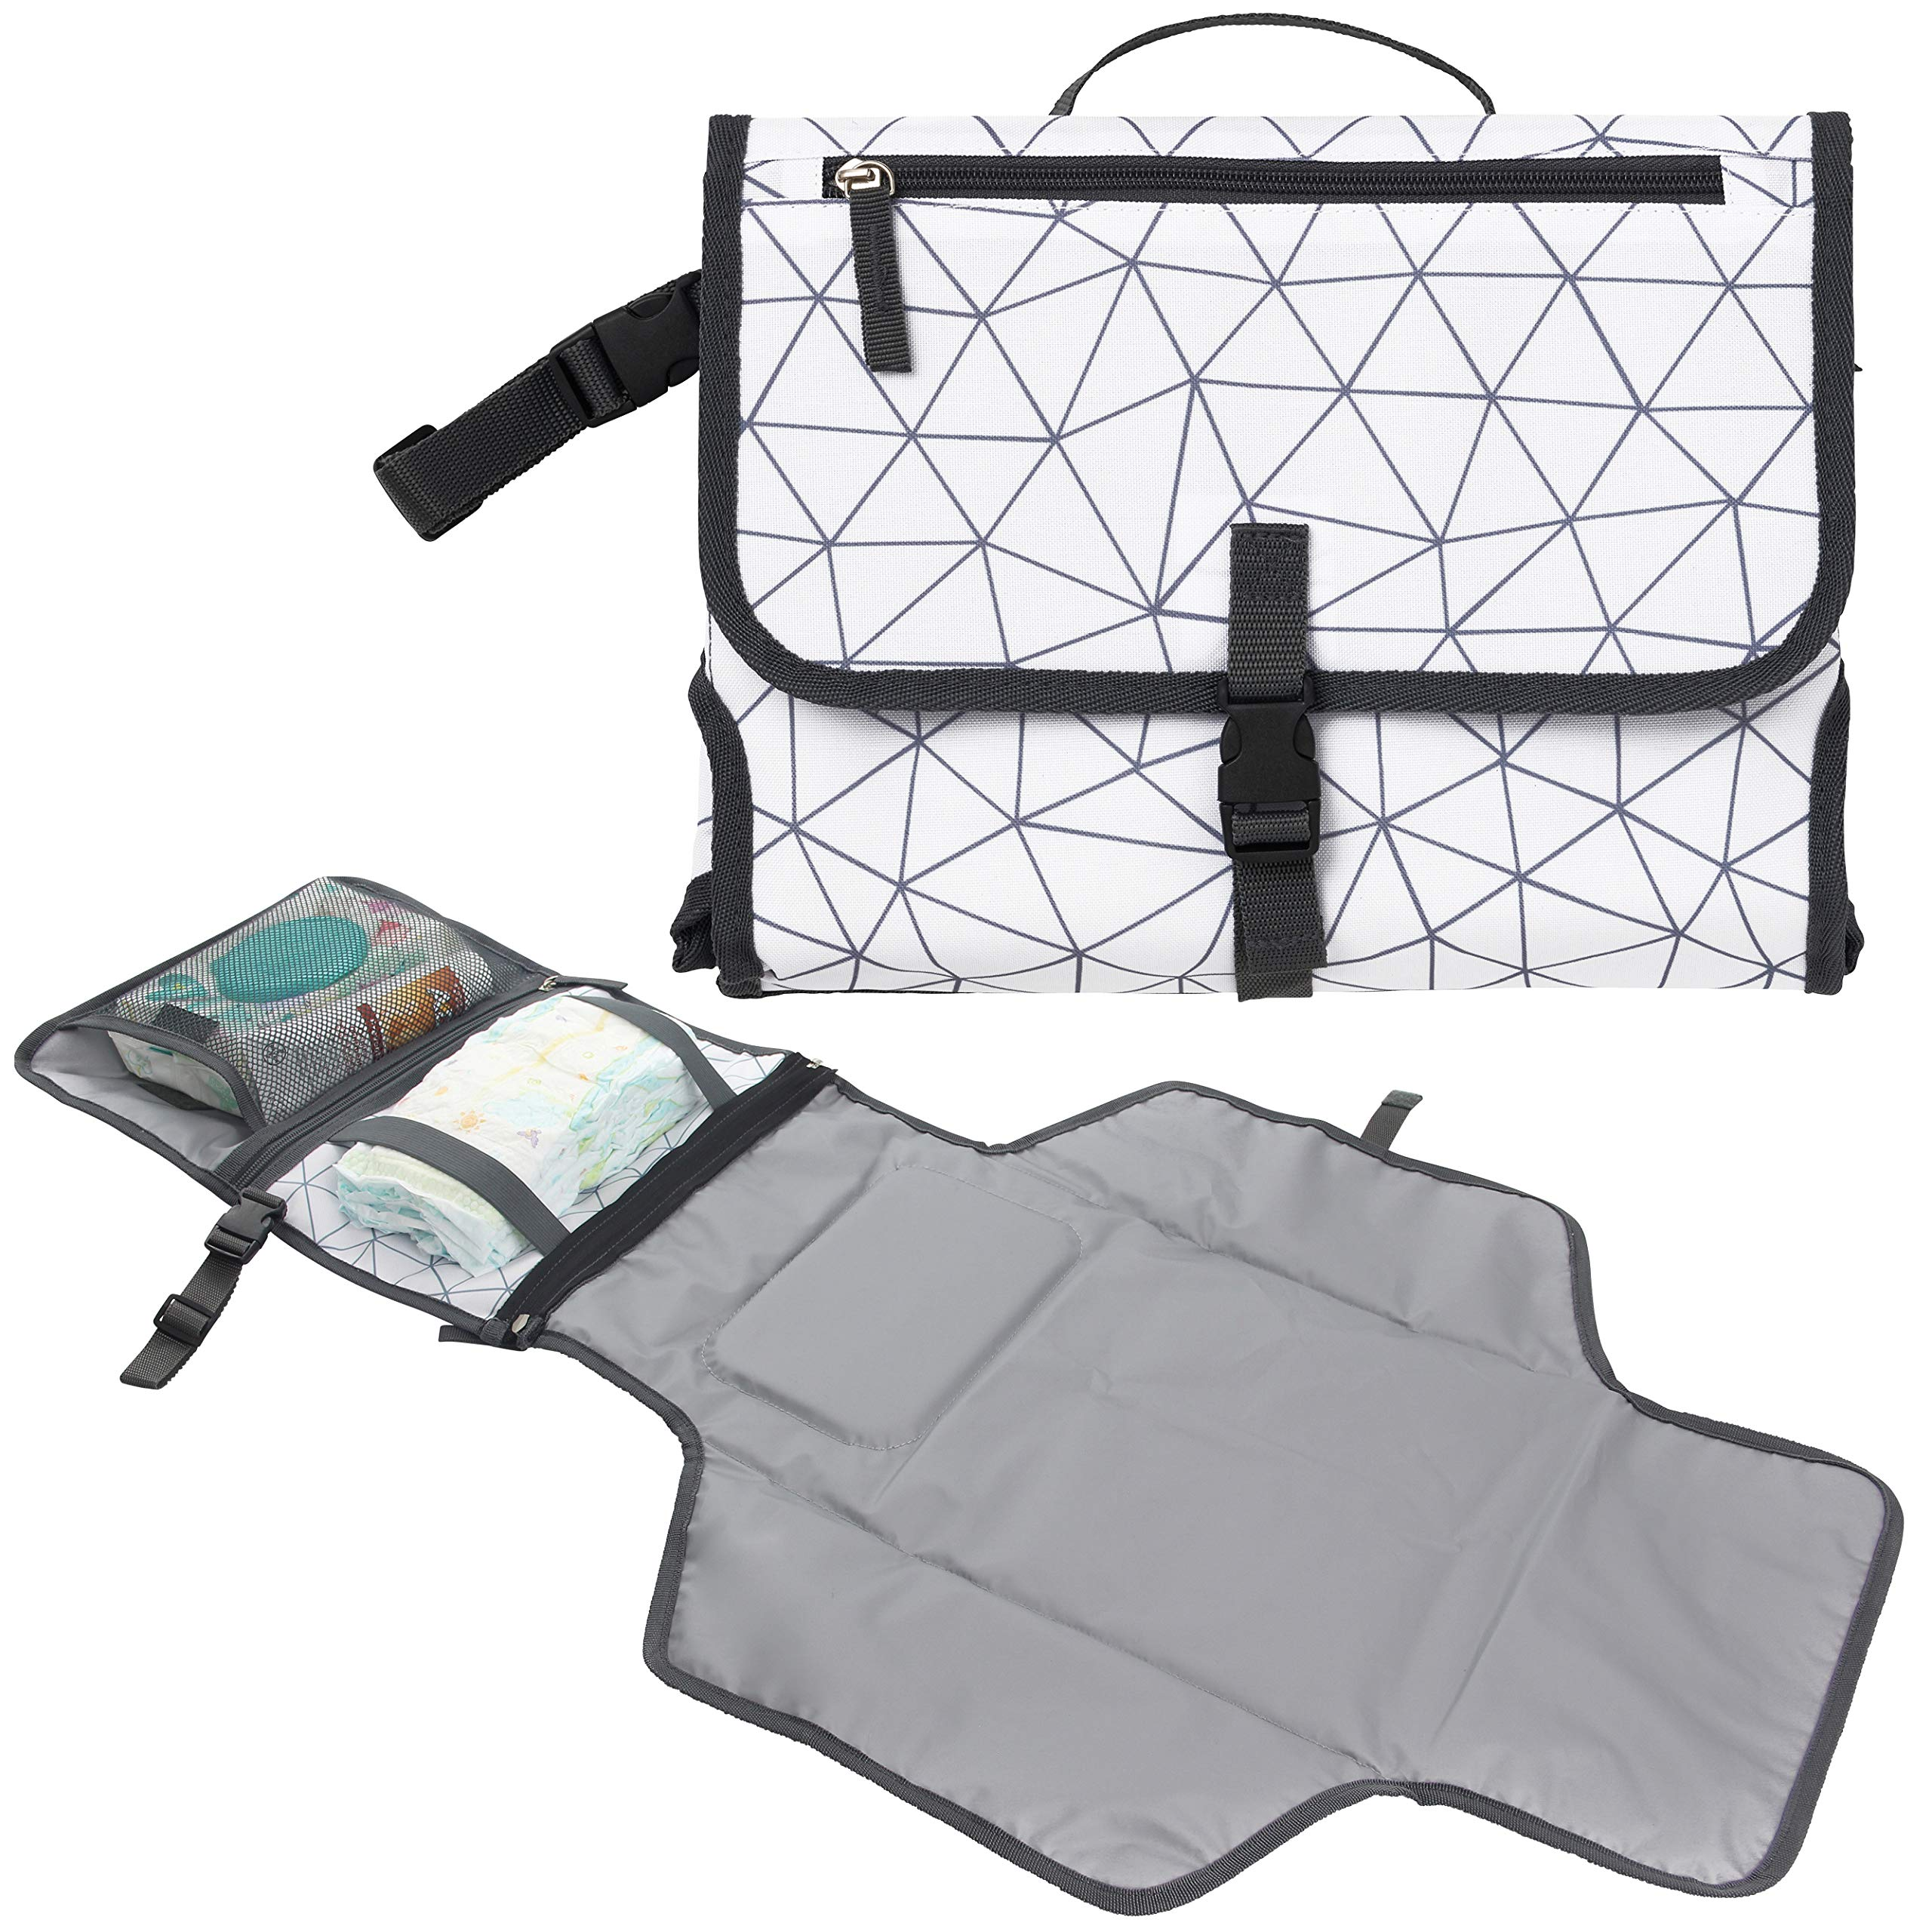 Baby Portable Diaper Changing Pad, Waterproof Travel Changing Mat Station | Built-in Padded Head Rest, Includes Mesh Pockets for Diapers and Wipes, and Adjustable Strap for Strollers by AllSett Baby